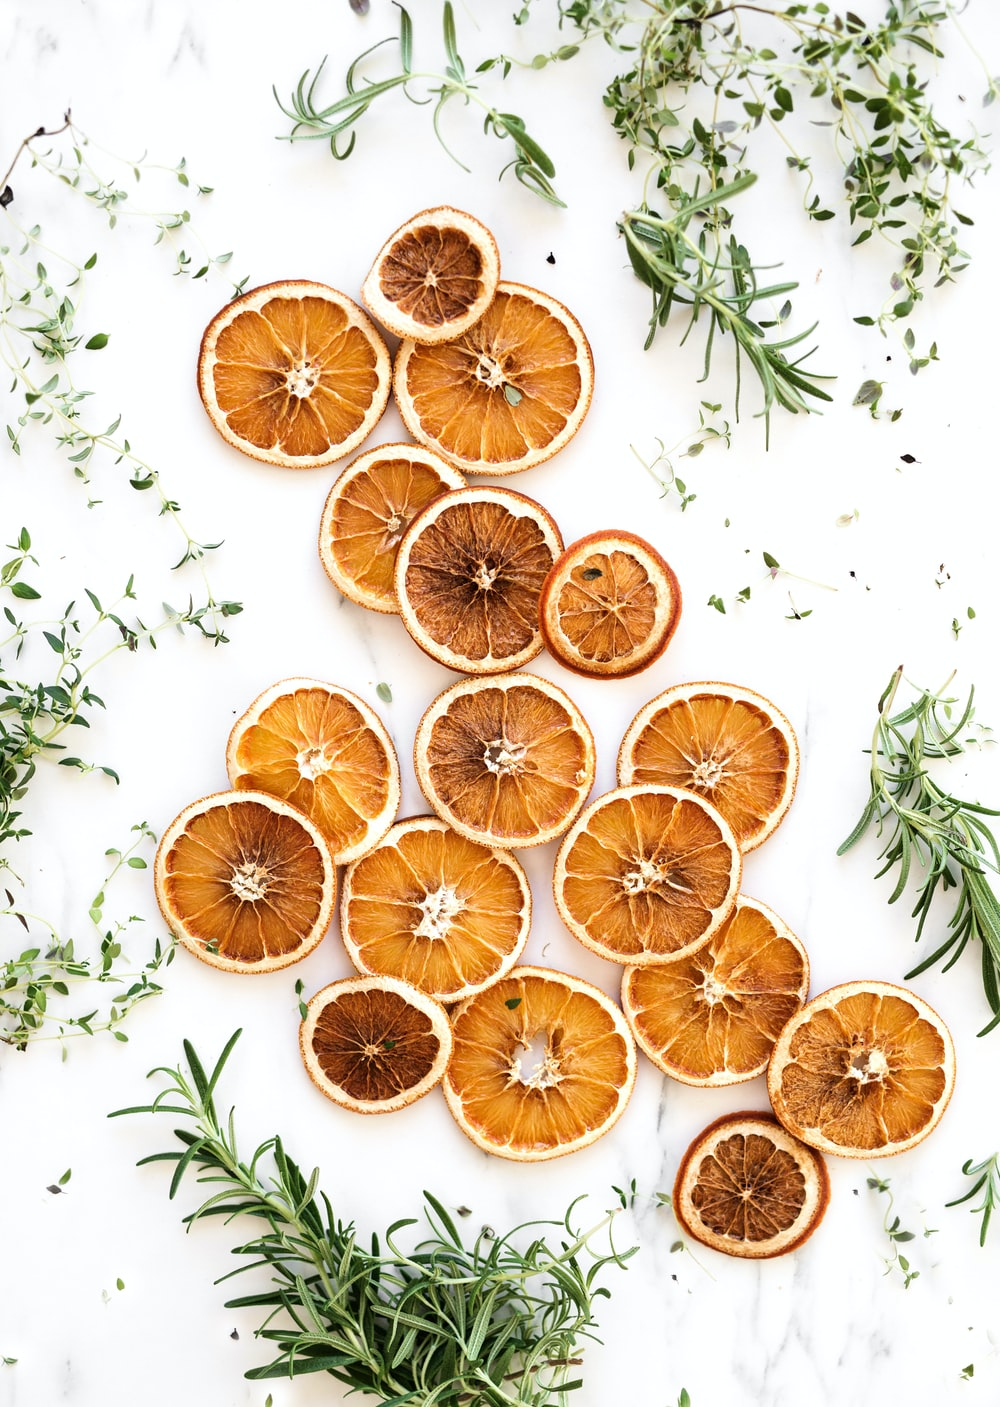 sliced lemons surrounded by green herbs